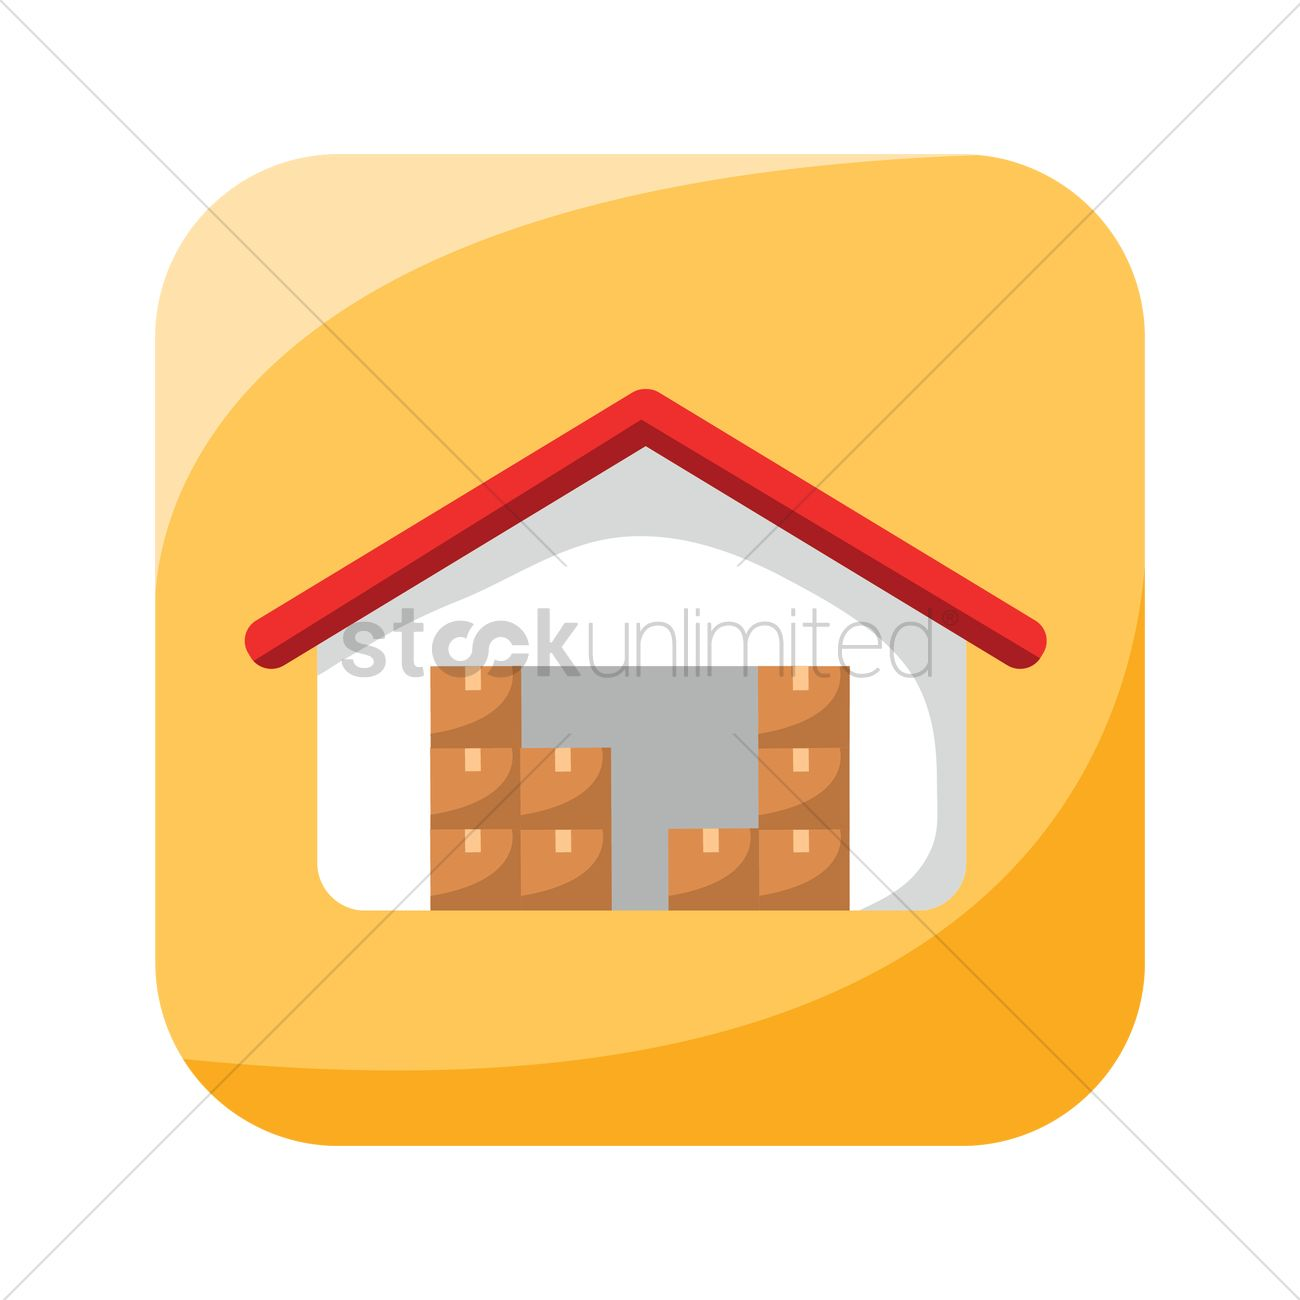 Warehouse Vector Graphic - Warehouse Group Vector, Transparent background PNG HD thumbnail